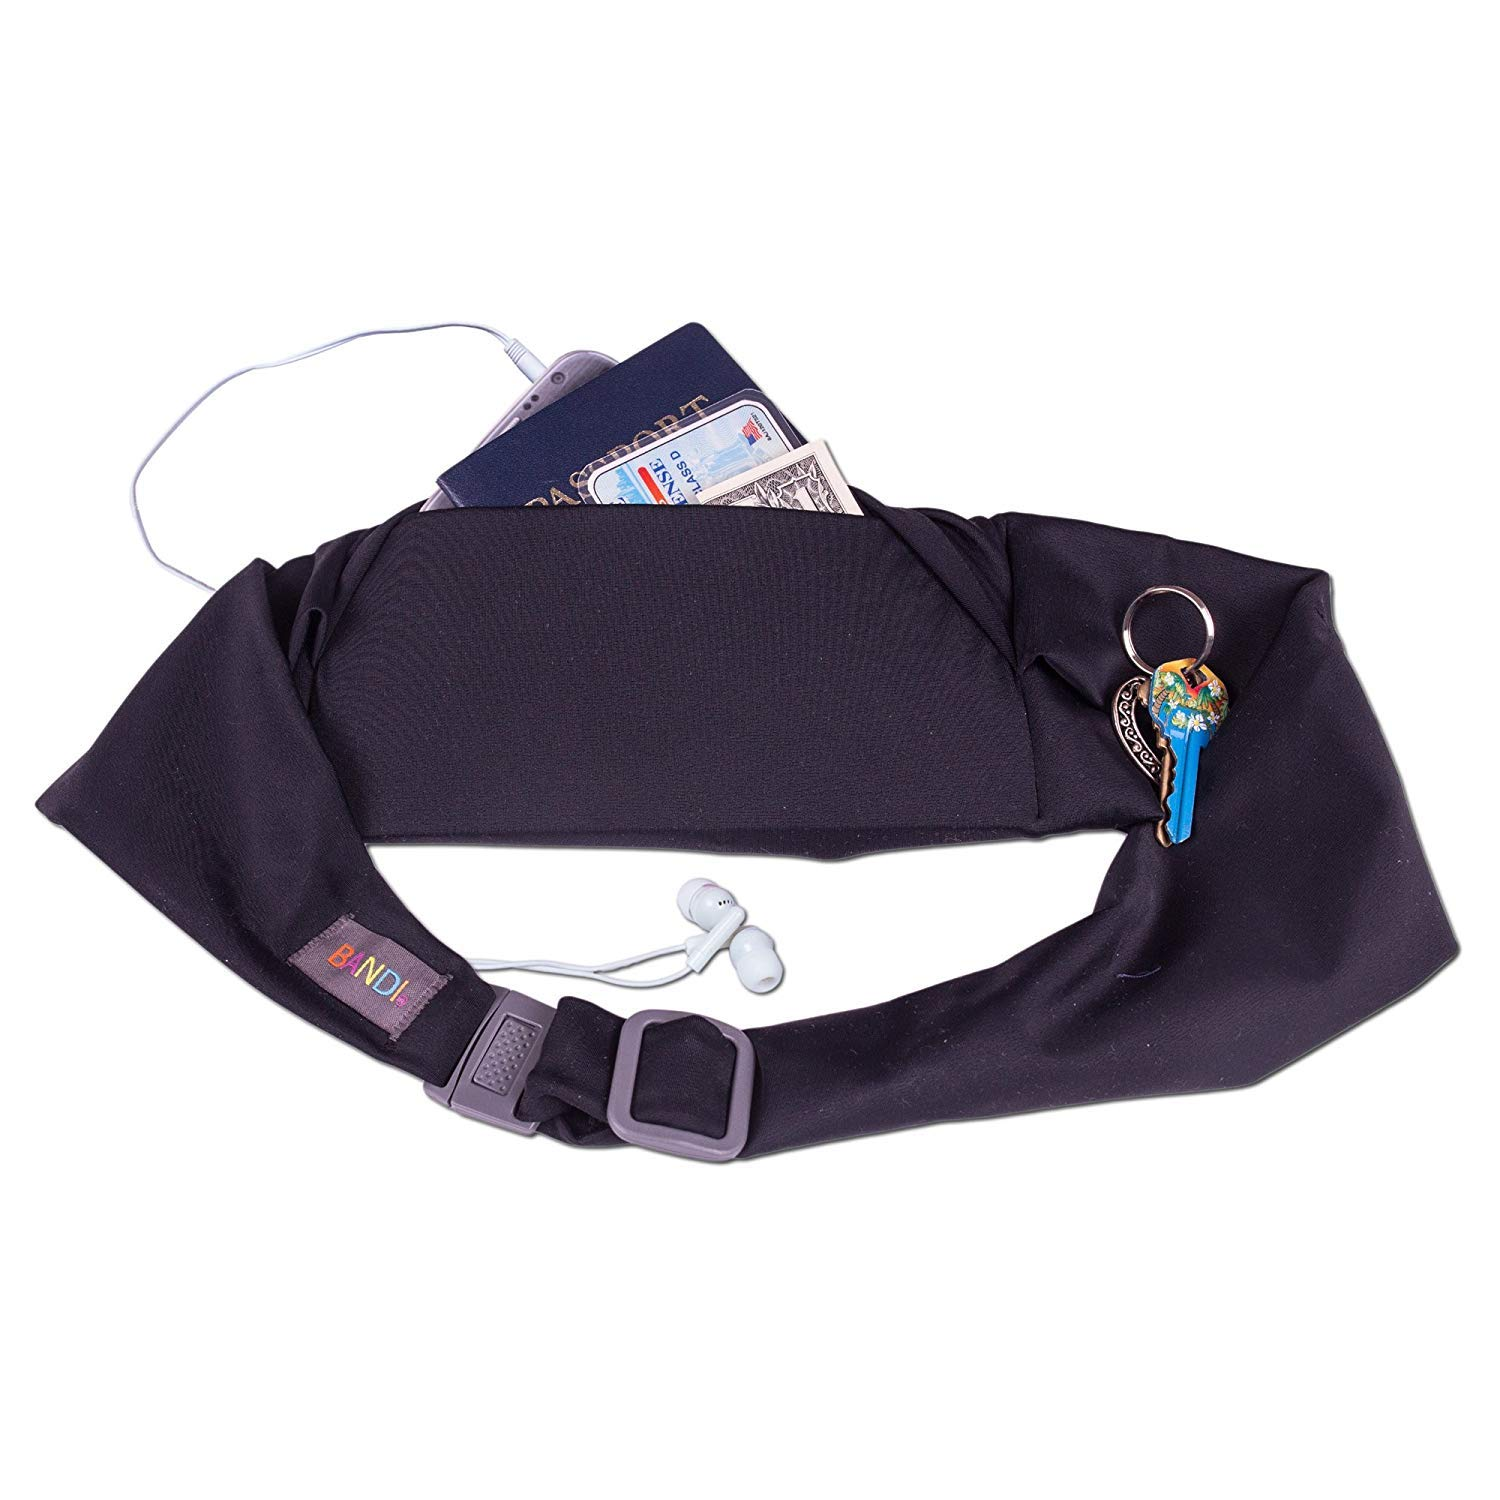 BANDI Large Travel and Running Belt, Securely Carry Keys, Phone, Medicine, Money or Food While You Exercise or Travel Within Its Sleek 3 Pocket Design, Size 7.5 Inch by 3.5 Inch Black Solid One Size